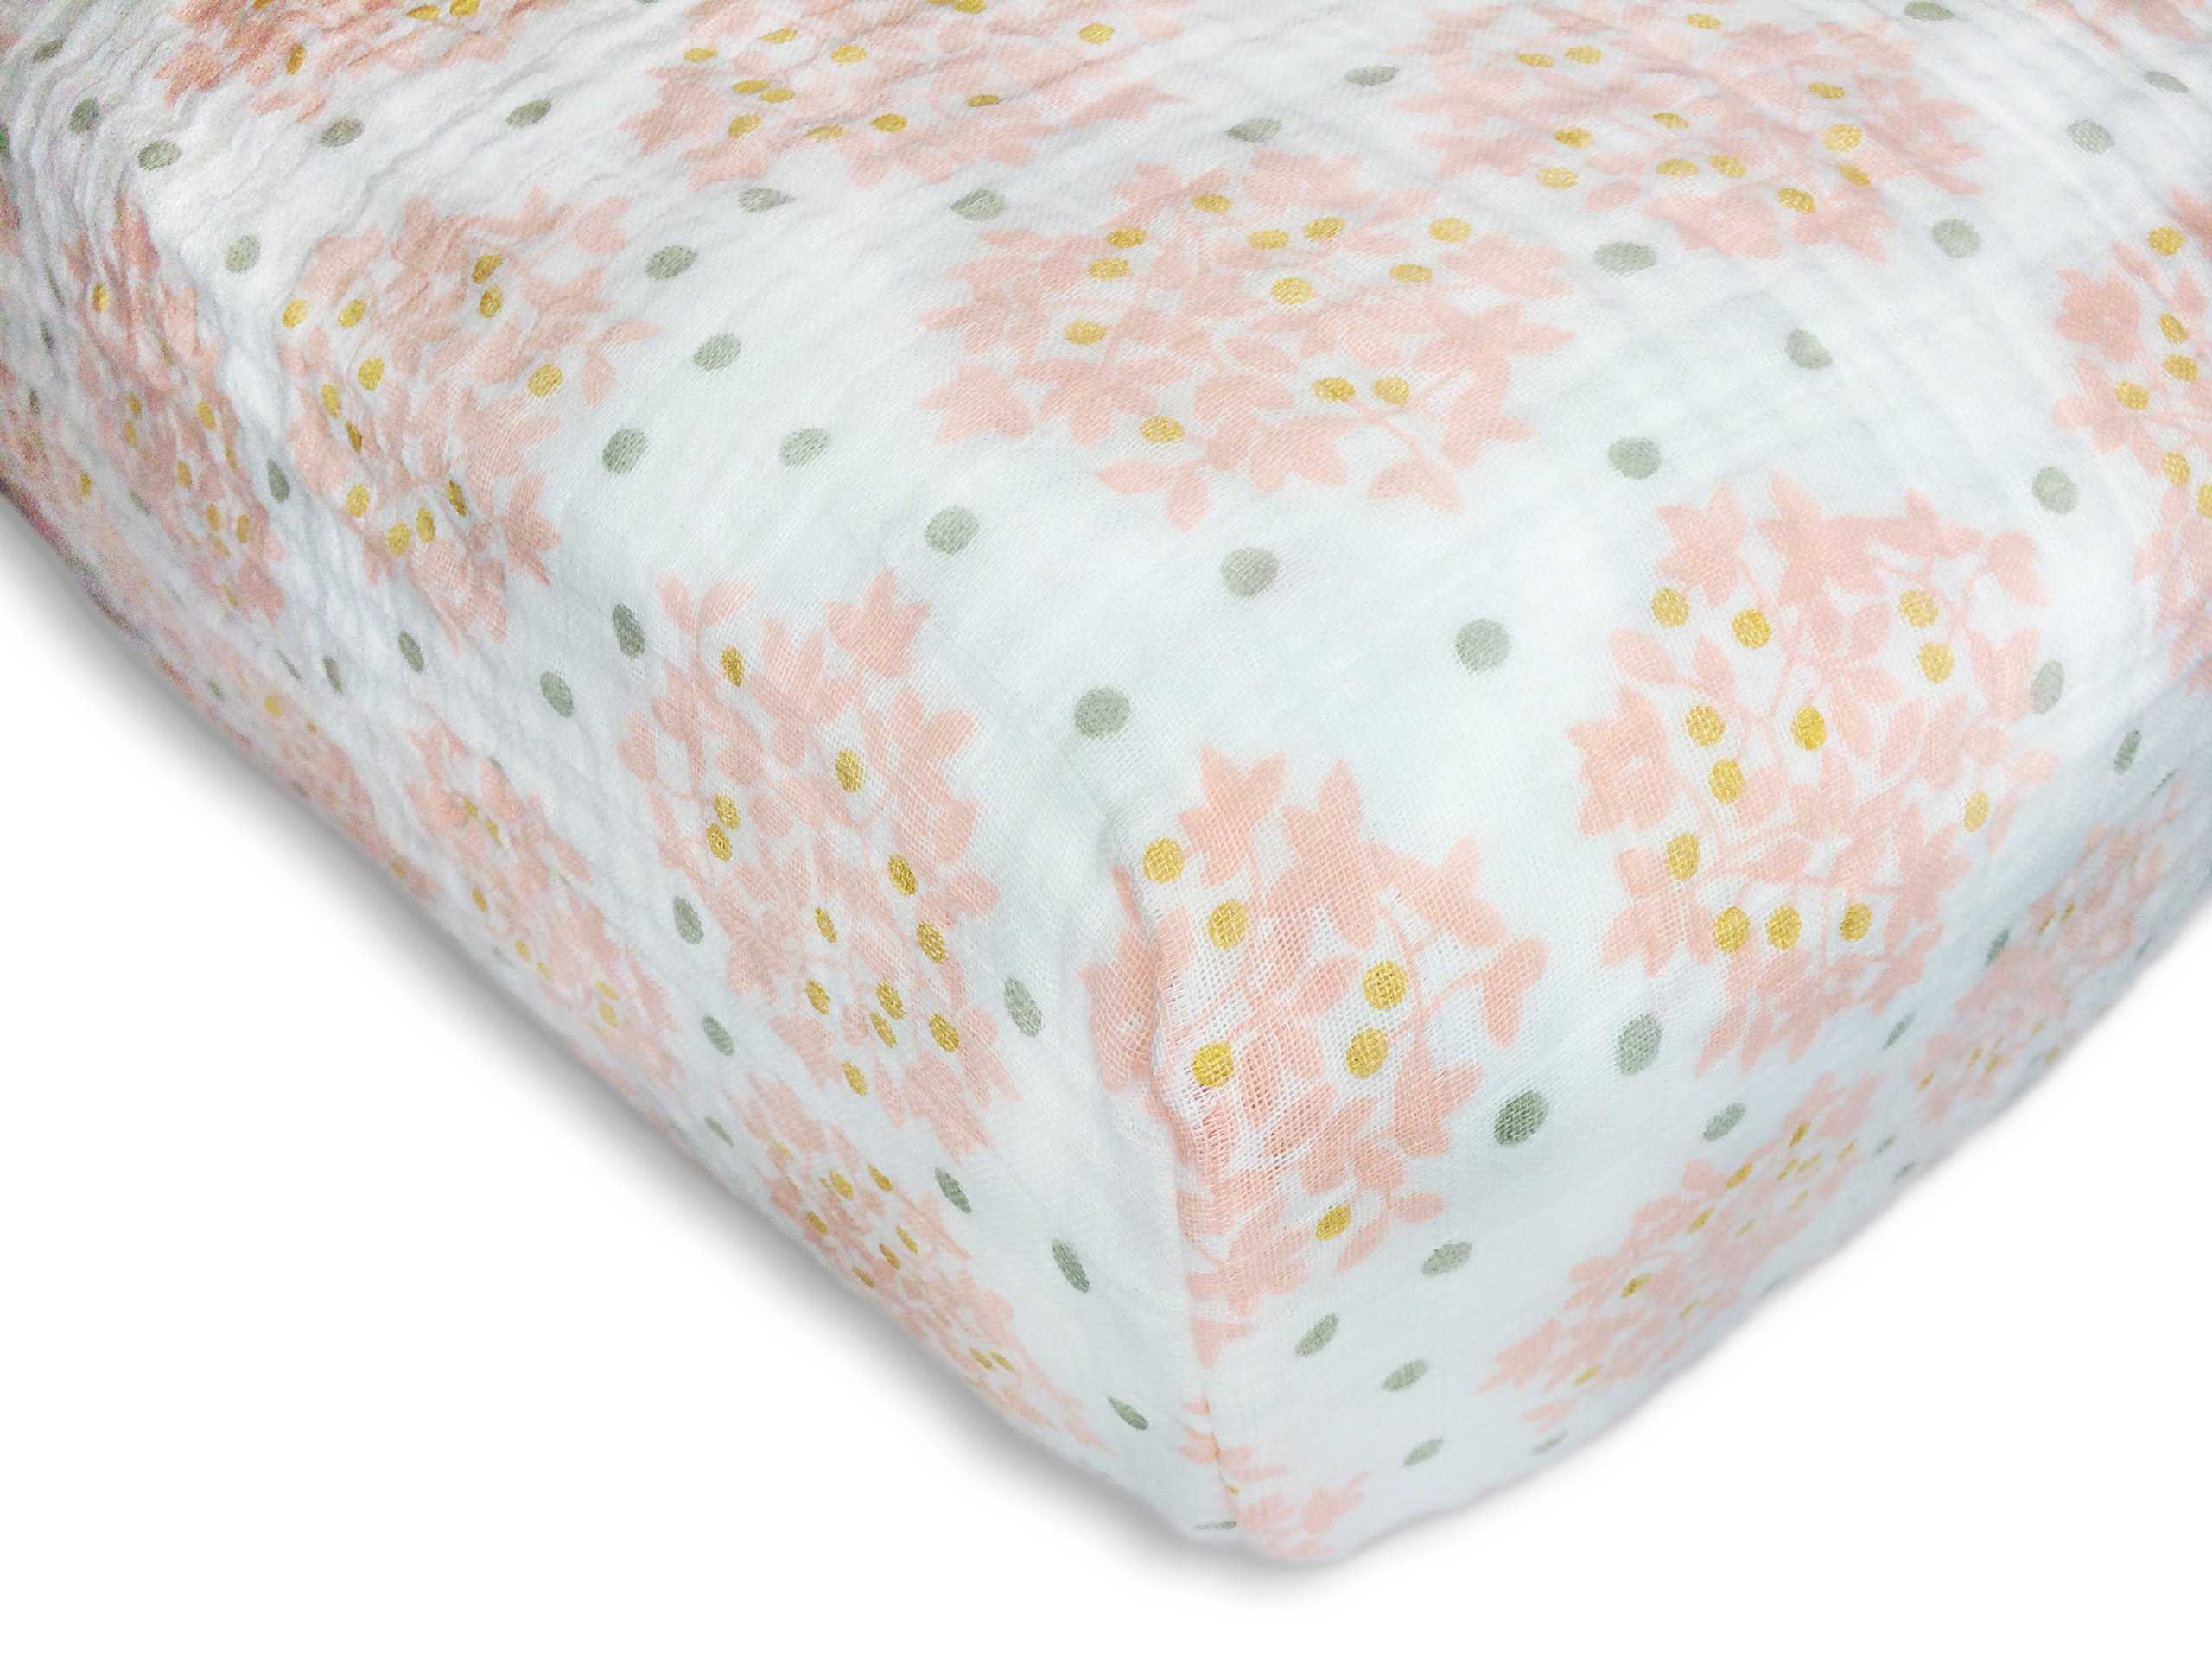 SwaddleDesigns Cotton Muslin Crib Sheet, Heavenly Floral with Shimmer, Pink by SwaddleDesigns